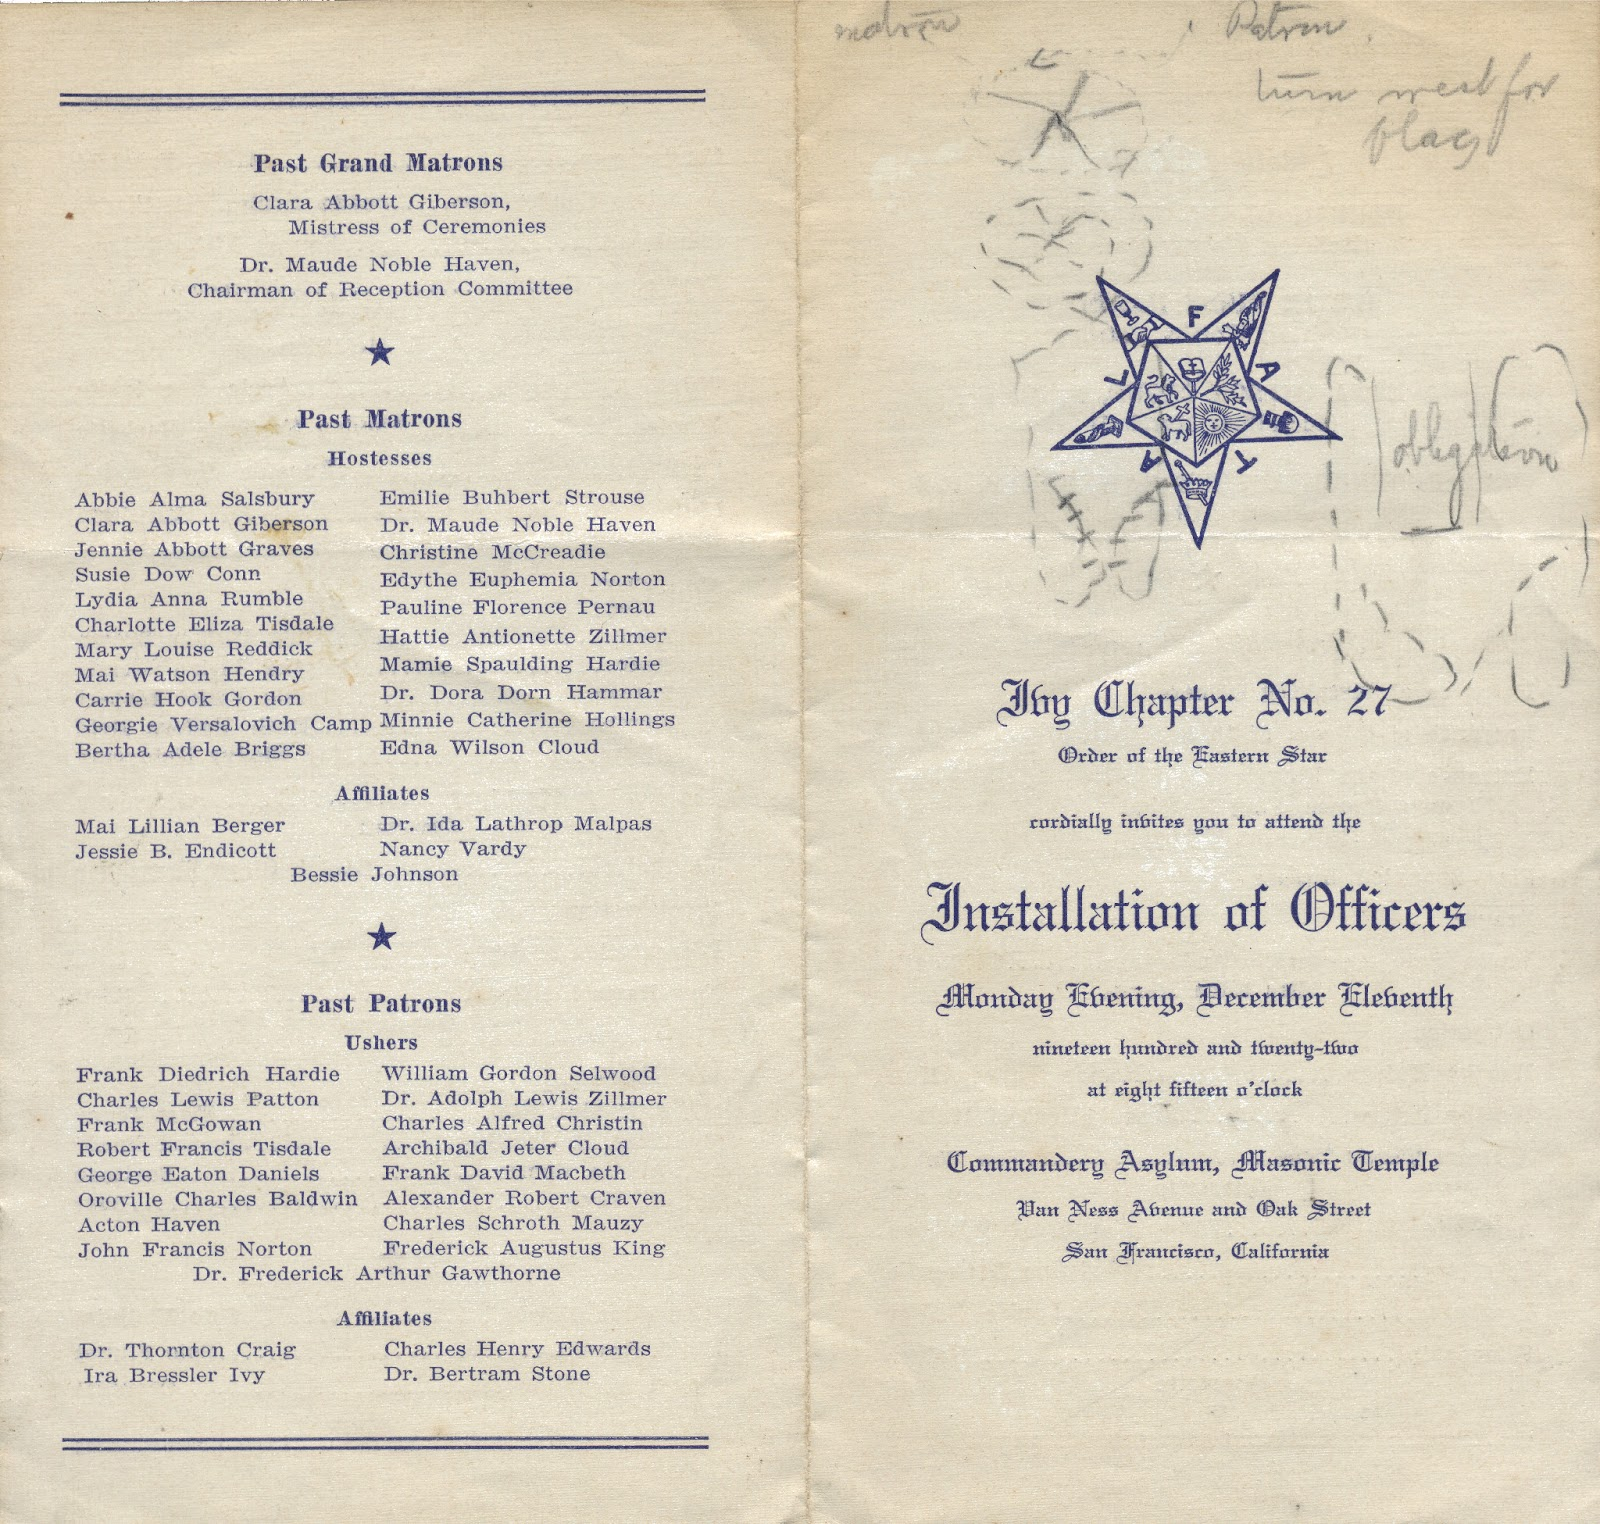 Order Of The Eastern Star Images The order of the eastern star